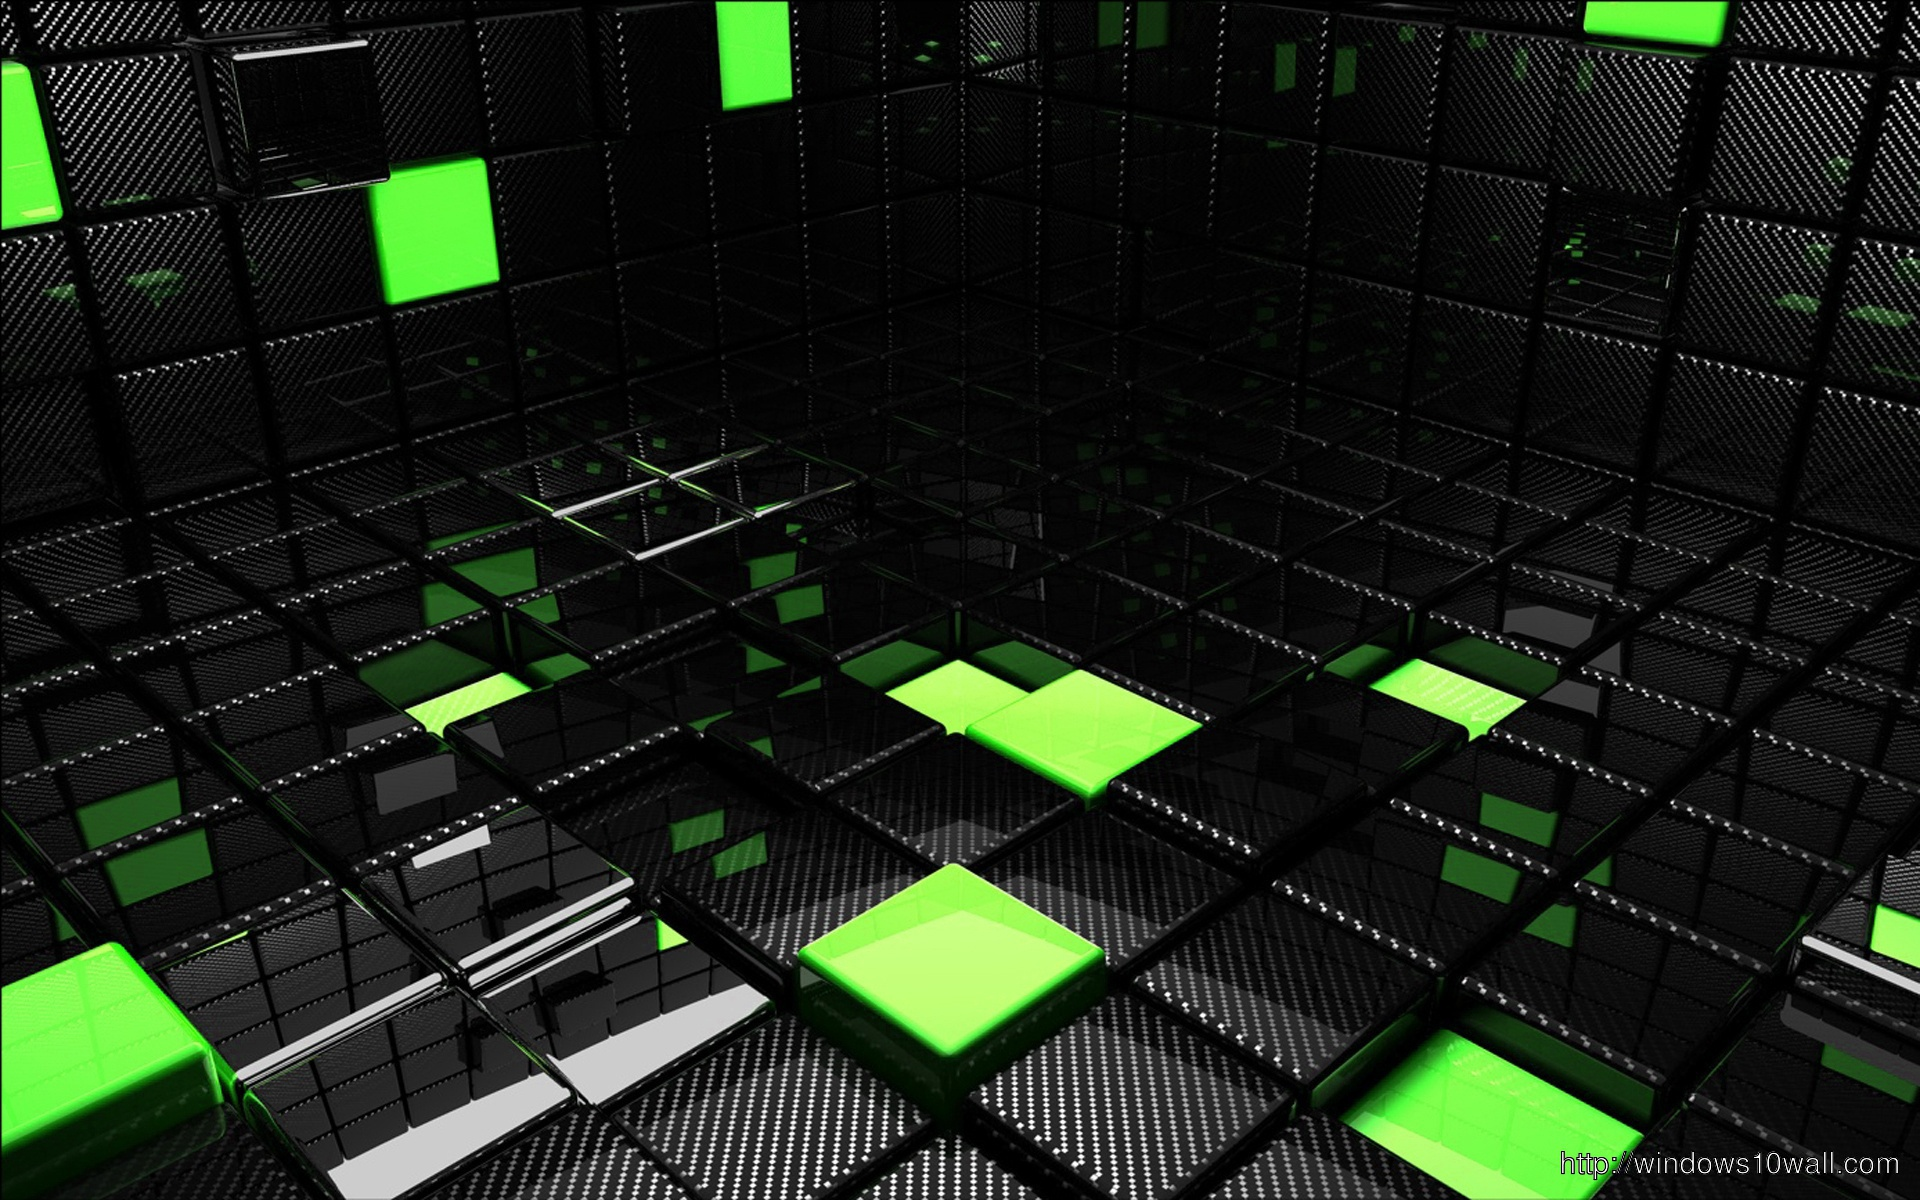 Green And Black Cubes Hd Wallpaper Windows 10 Wallpapers